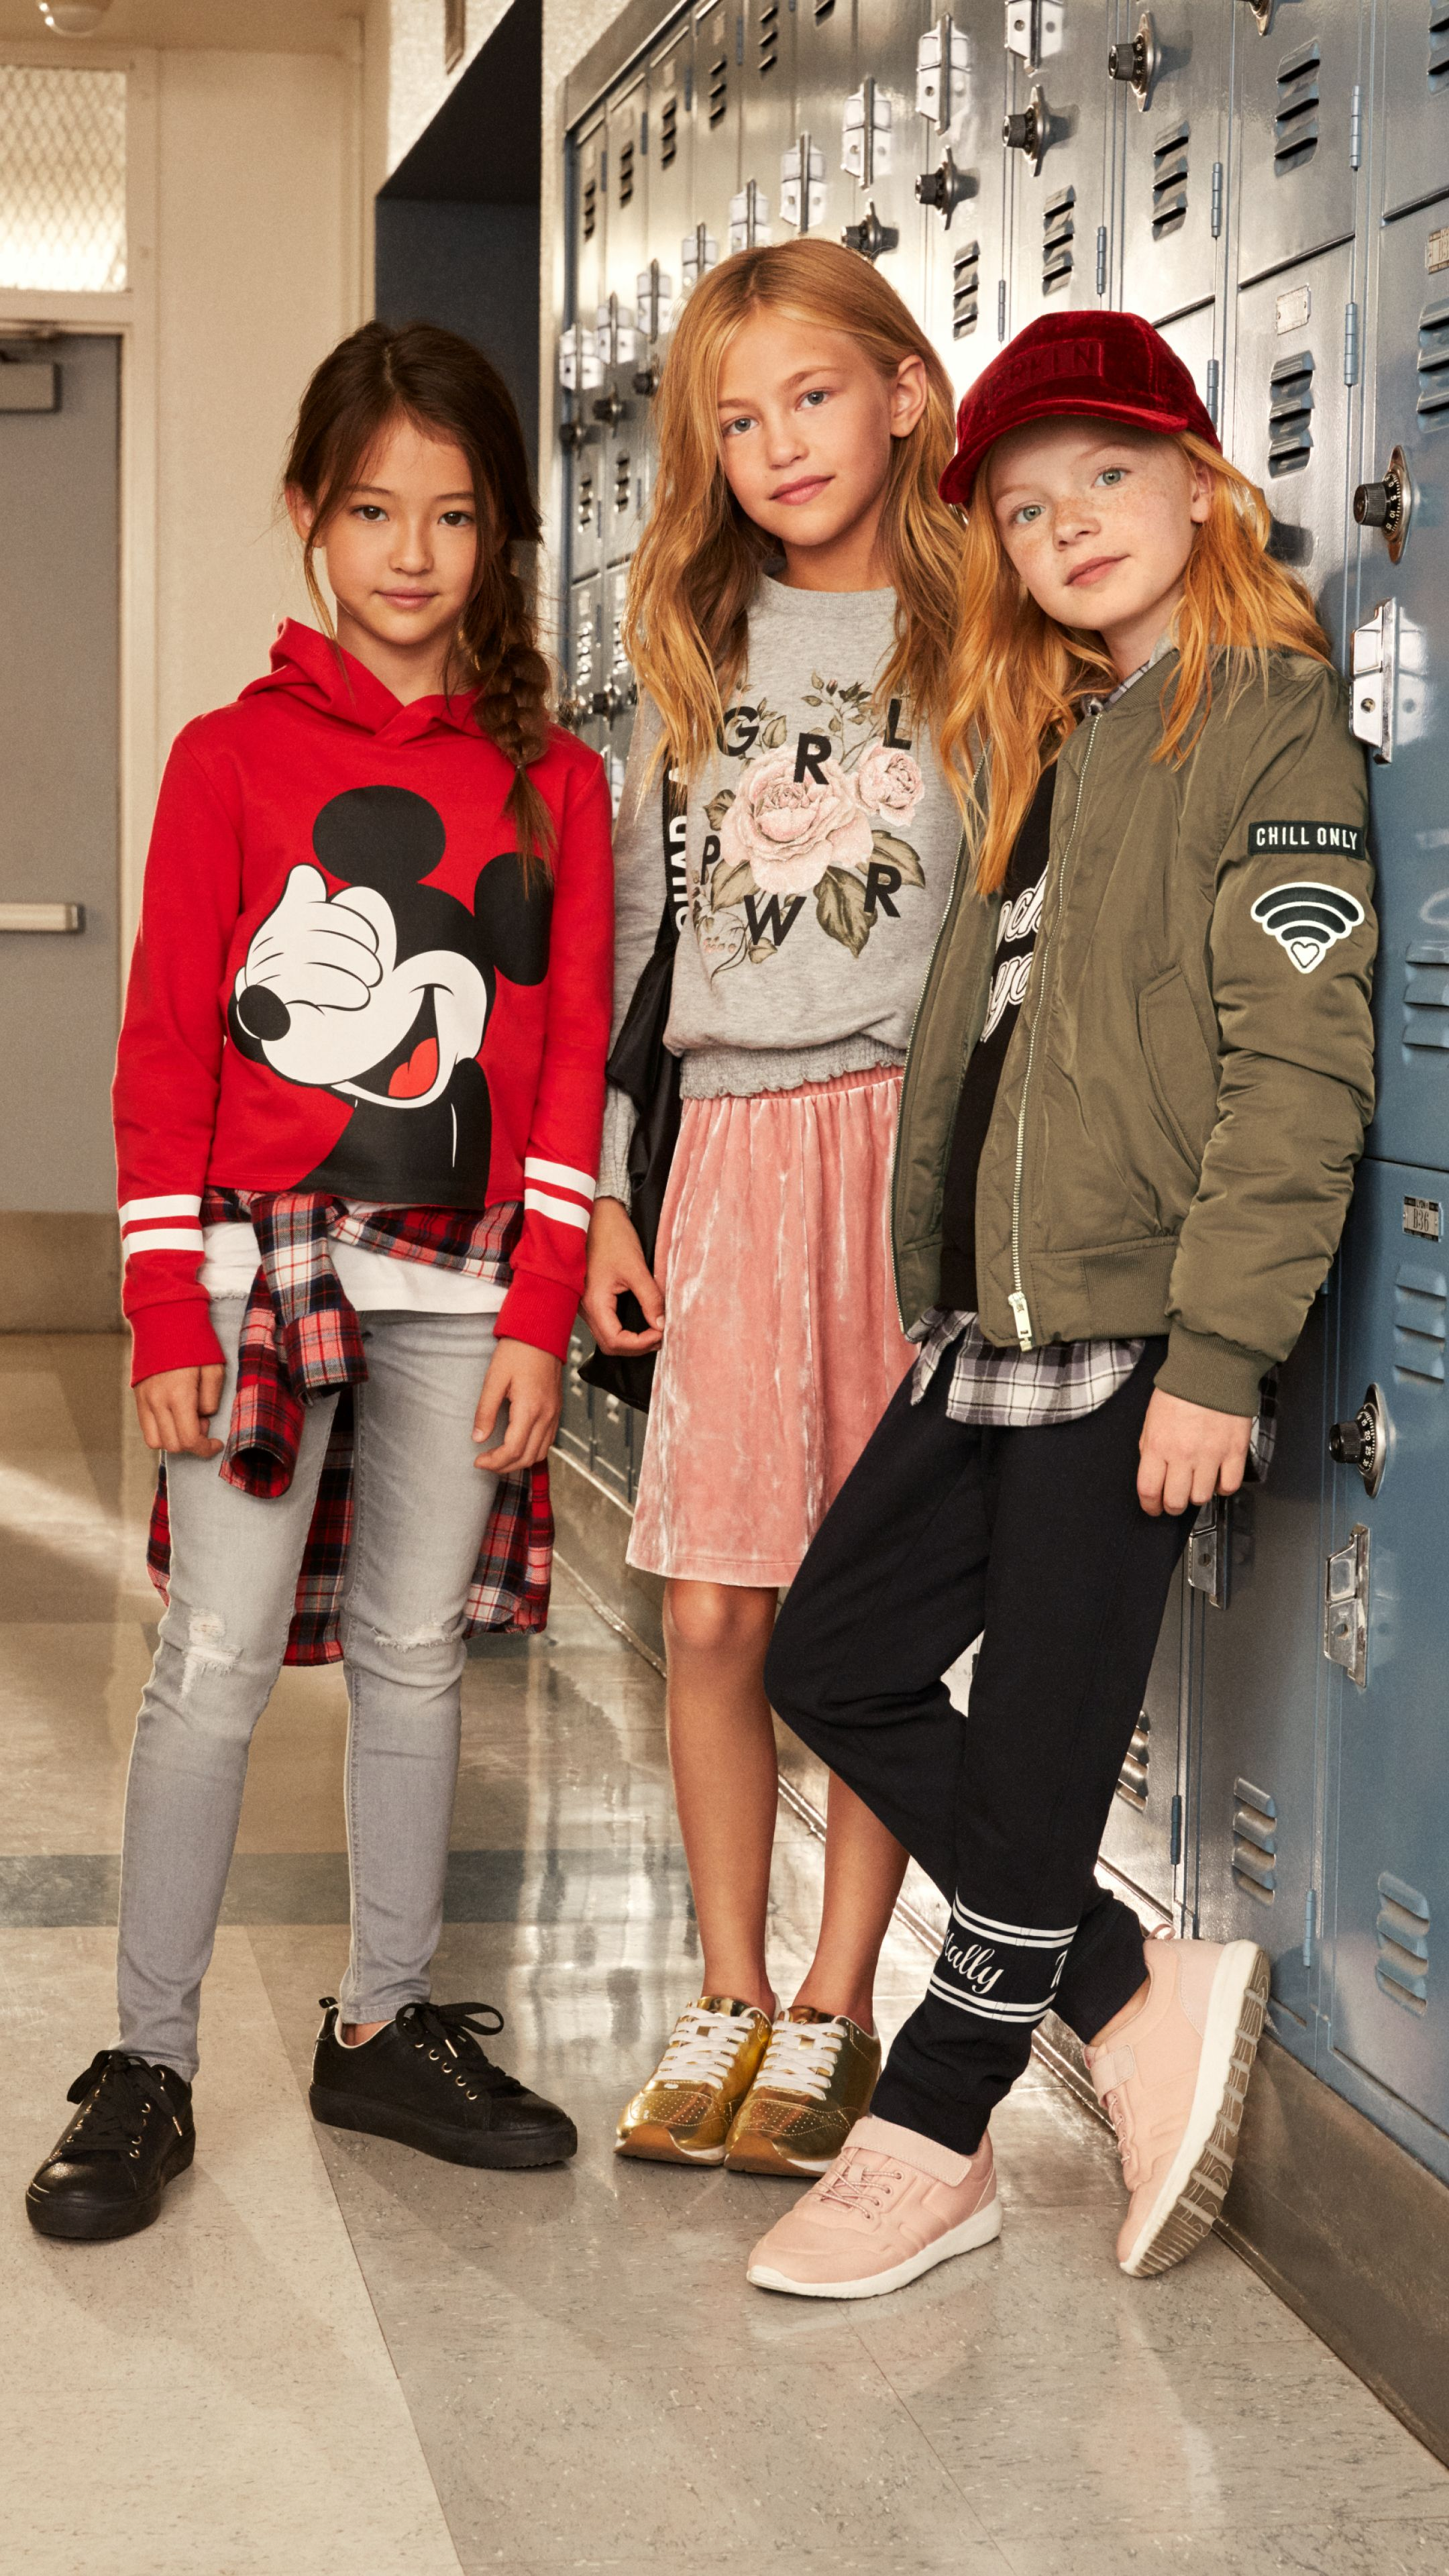 Gear Up For A New Semester Of Fun With The Latest Back To School Looks For Girls And Boys H M Kids Tween Outfits Tween Fashion Little Girl Fashion